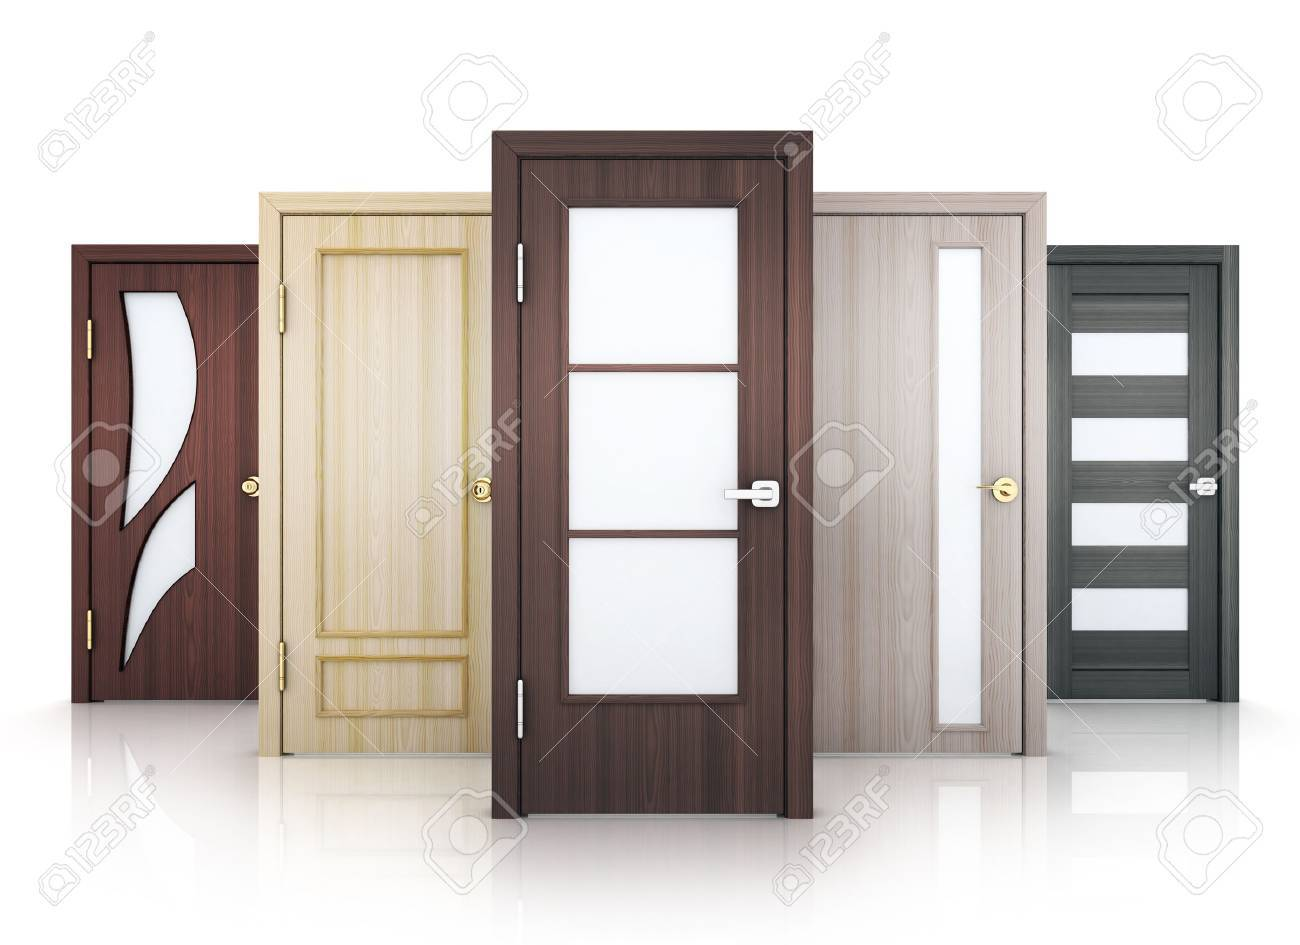 Five doors row on white background. 3d illustration. - 71390458